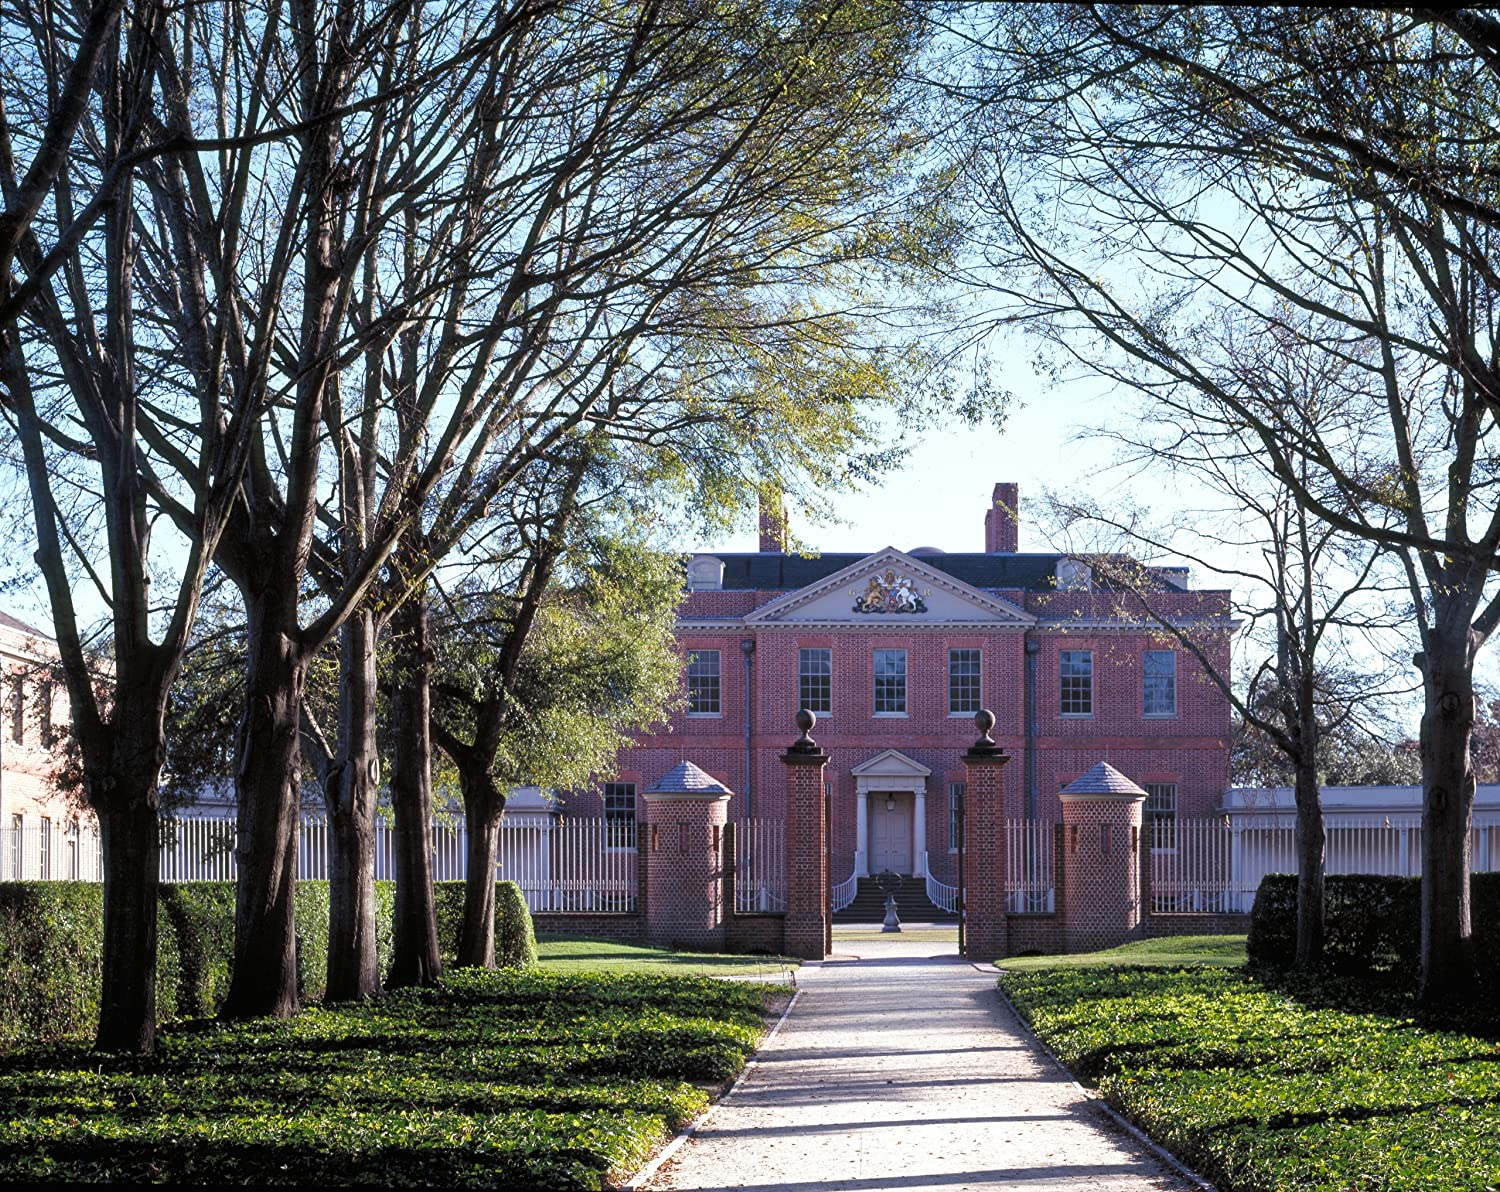 Tryon Palace in New Bern, North Carolina